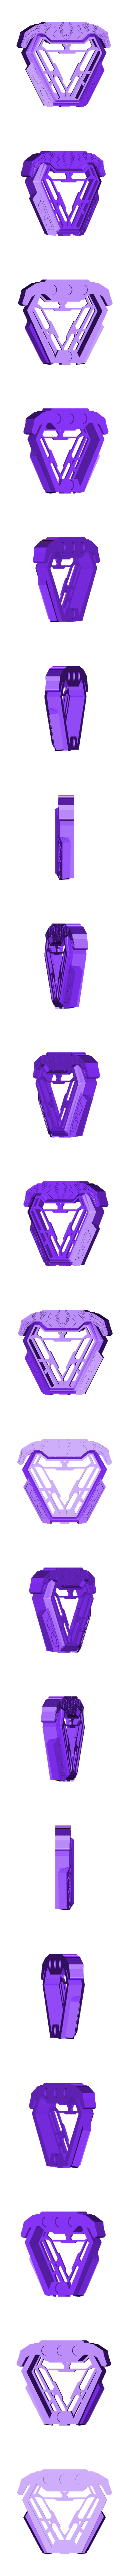 Arc_Reactor_Infinity_War_Top.stl Download free STL file Tony Stark Arc Reactor Infinity War & Endgame • 3D printing template, valertale